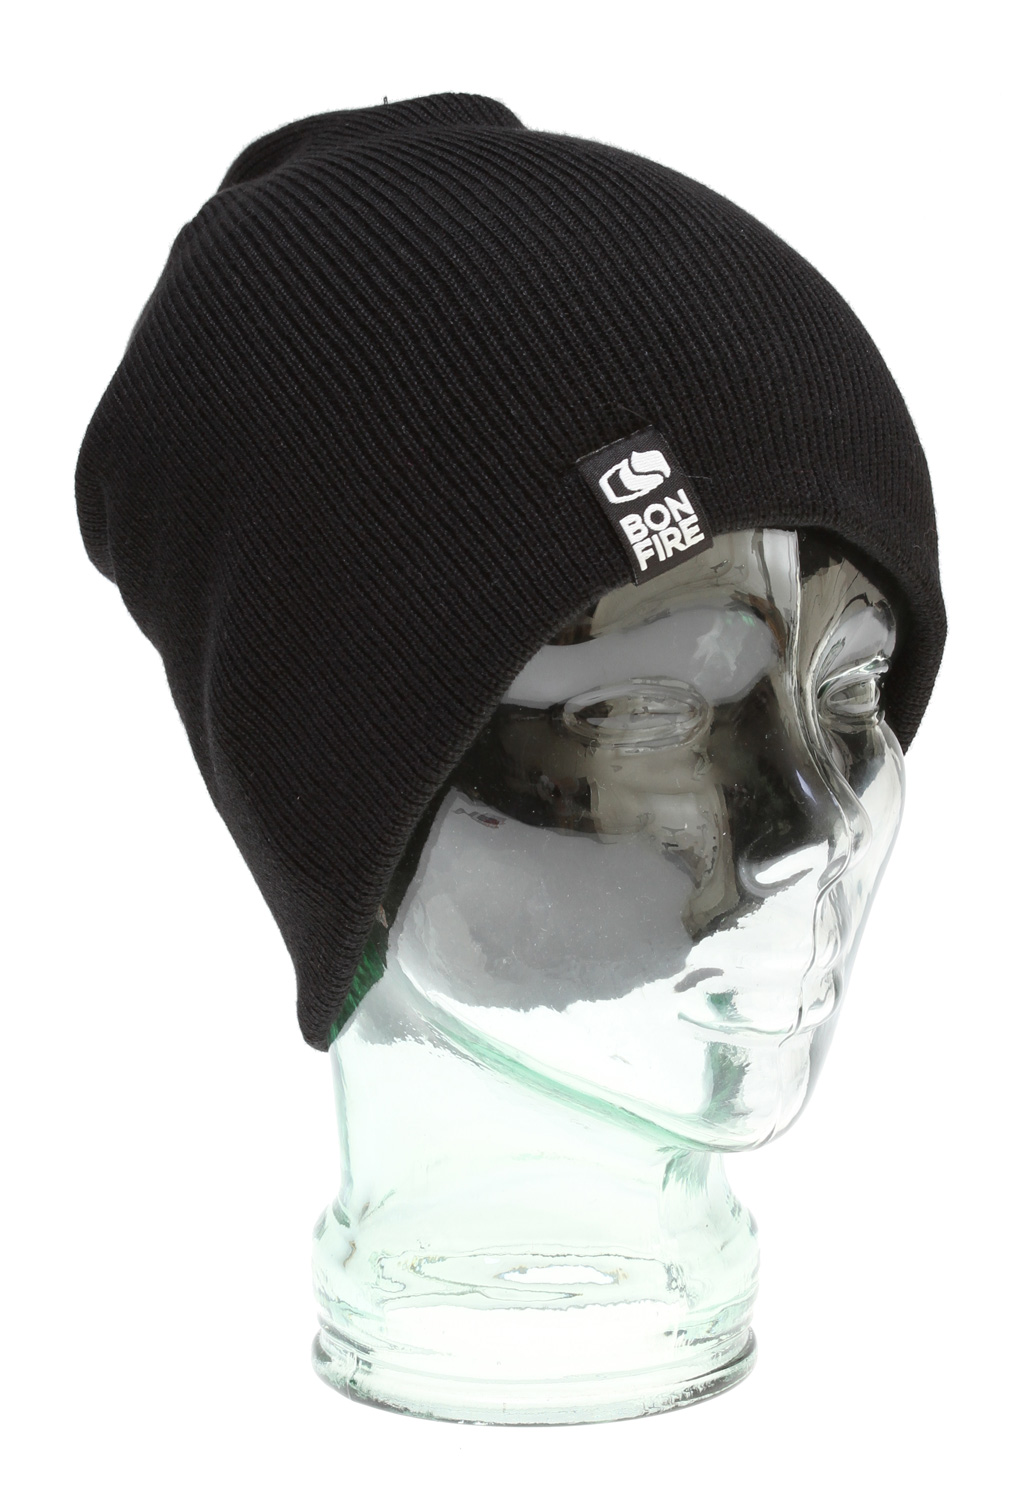 Slim and thin for warmth and style under your brain bucket. - $24.95